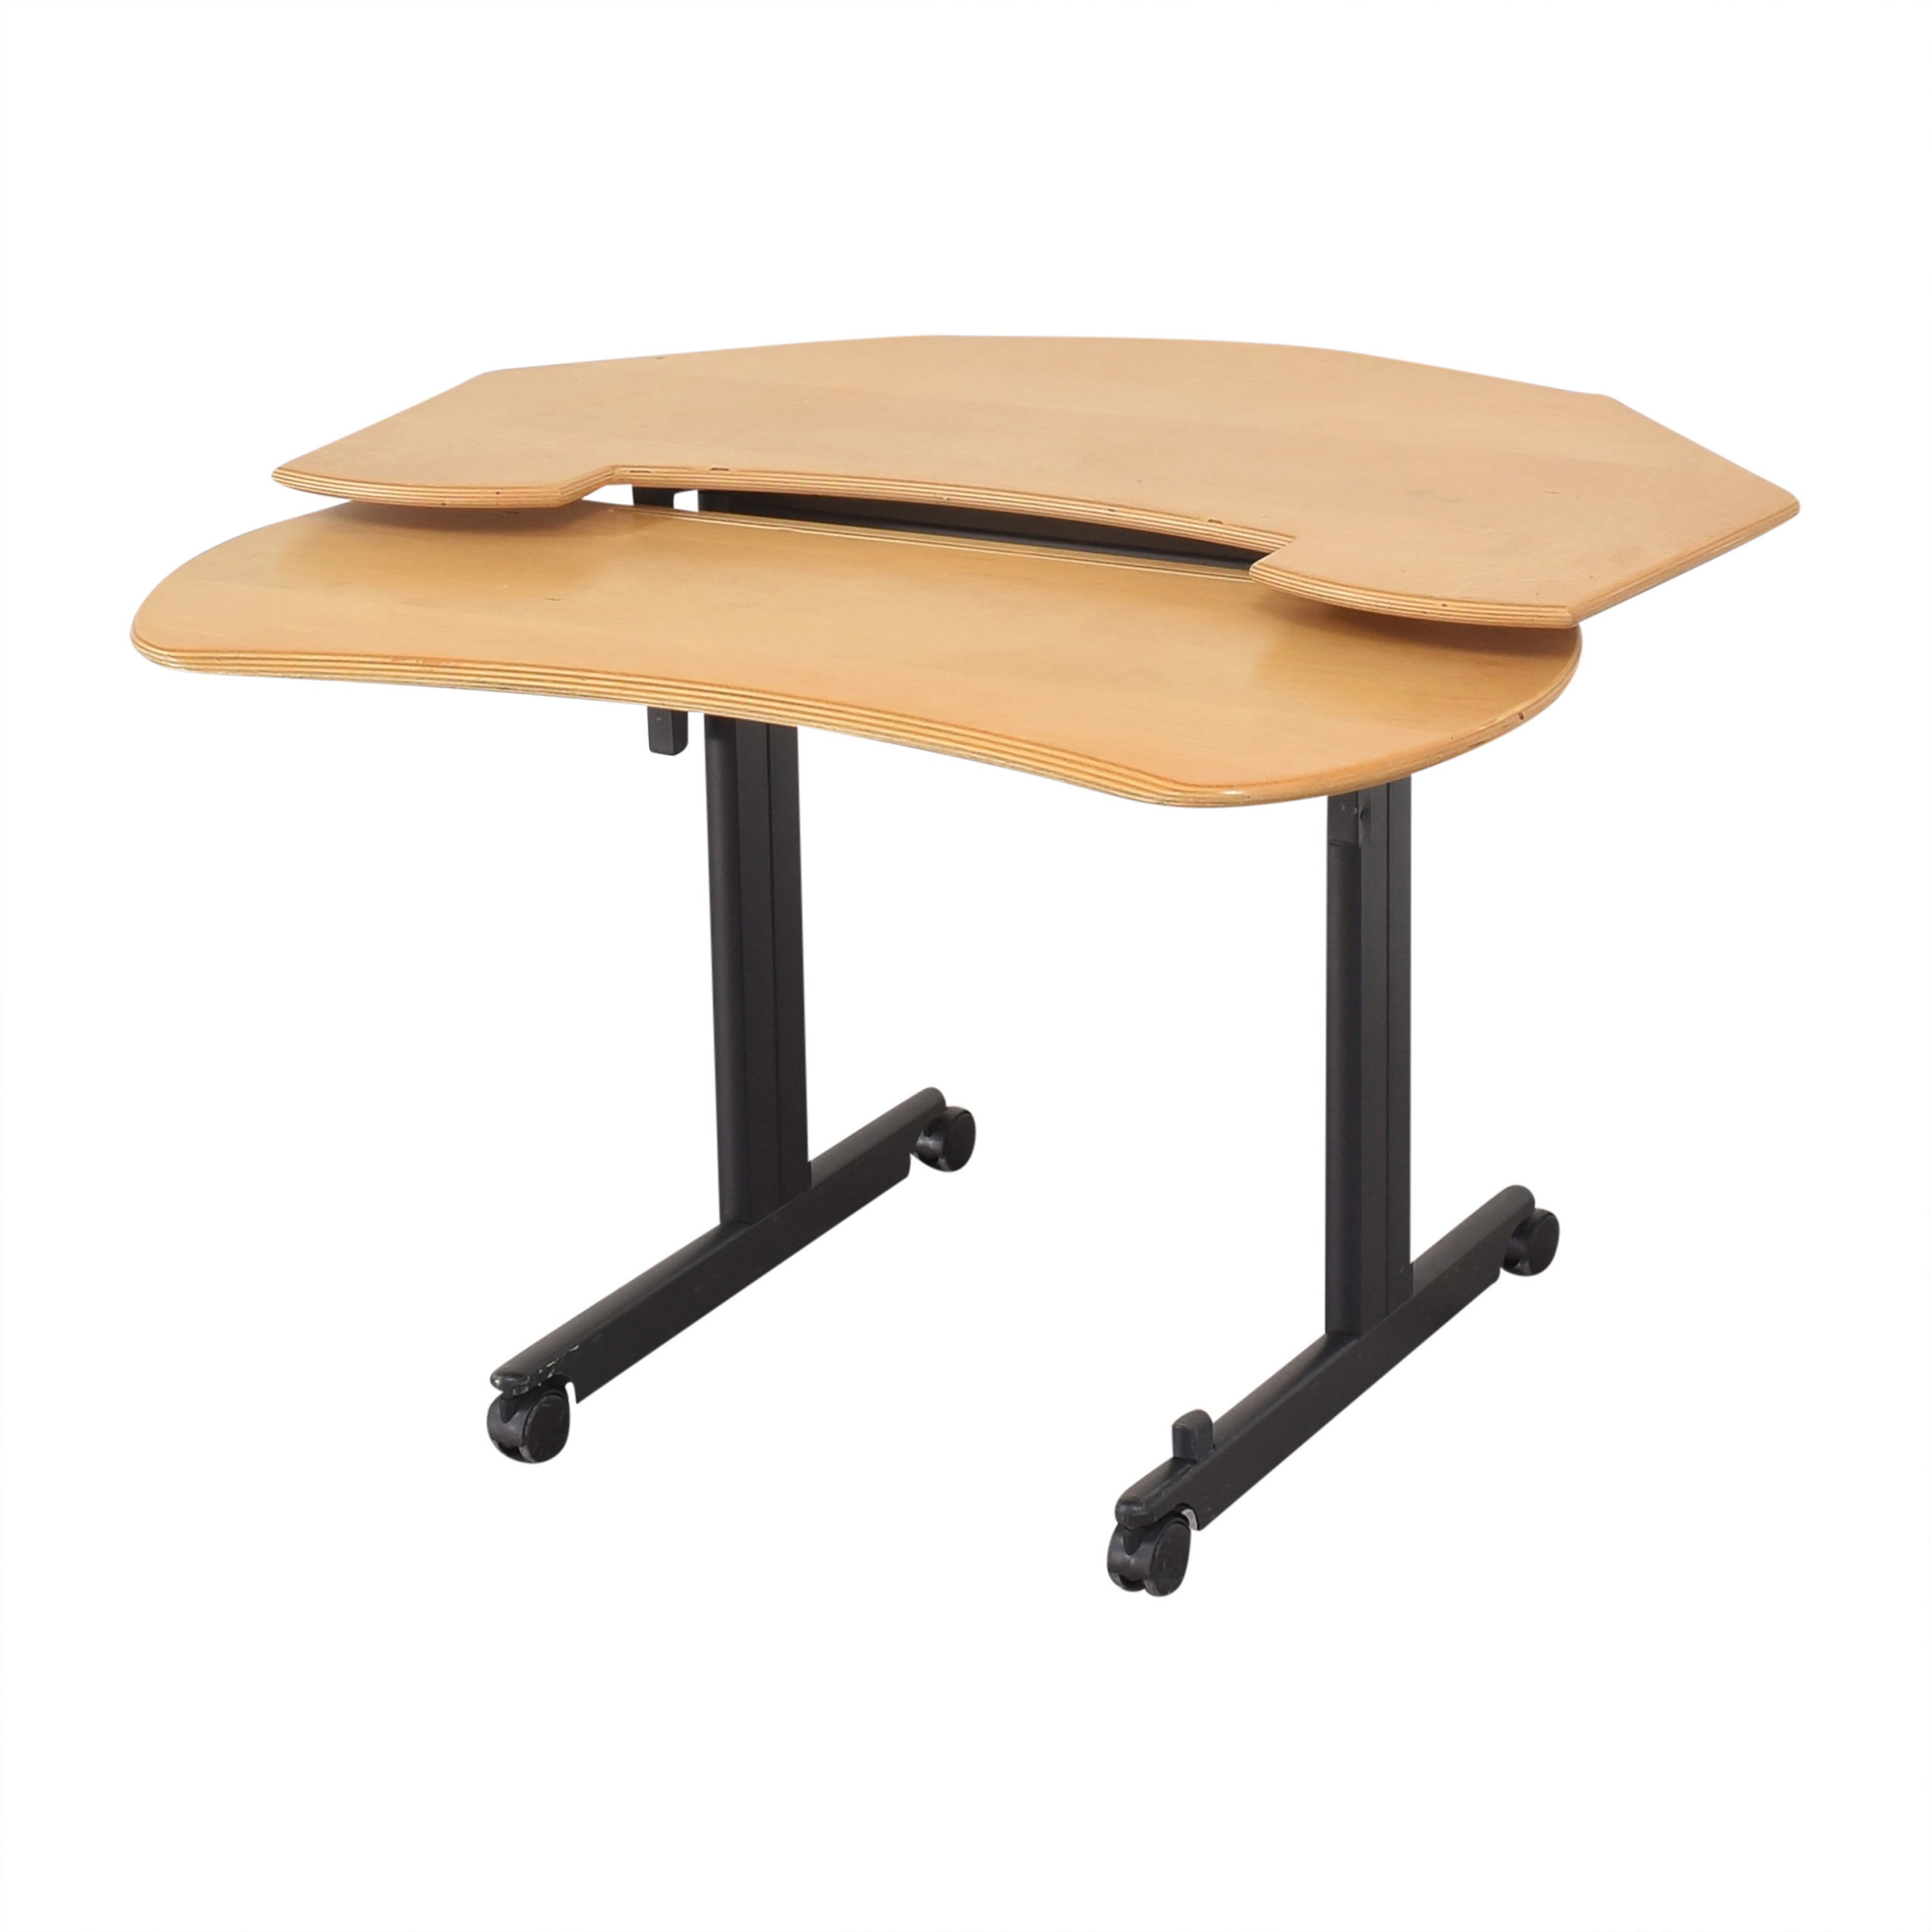 Biomorph Biomorph Tiered Desk price